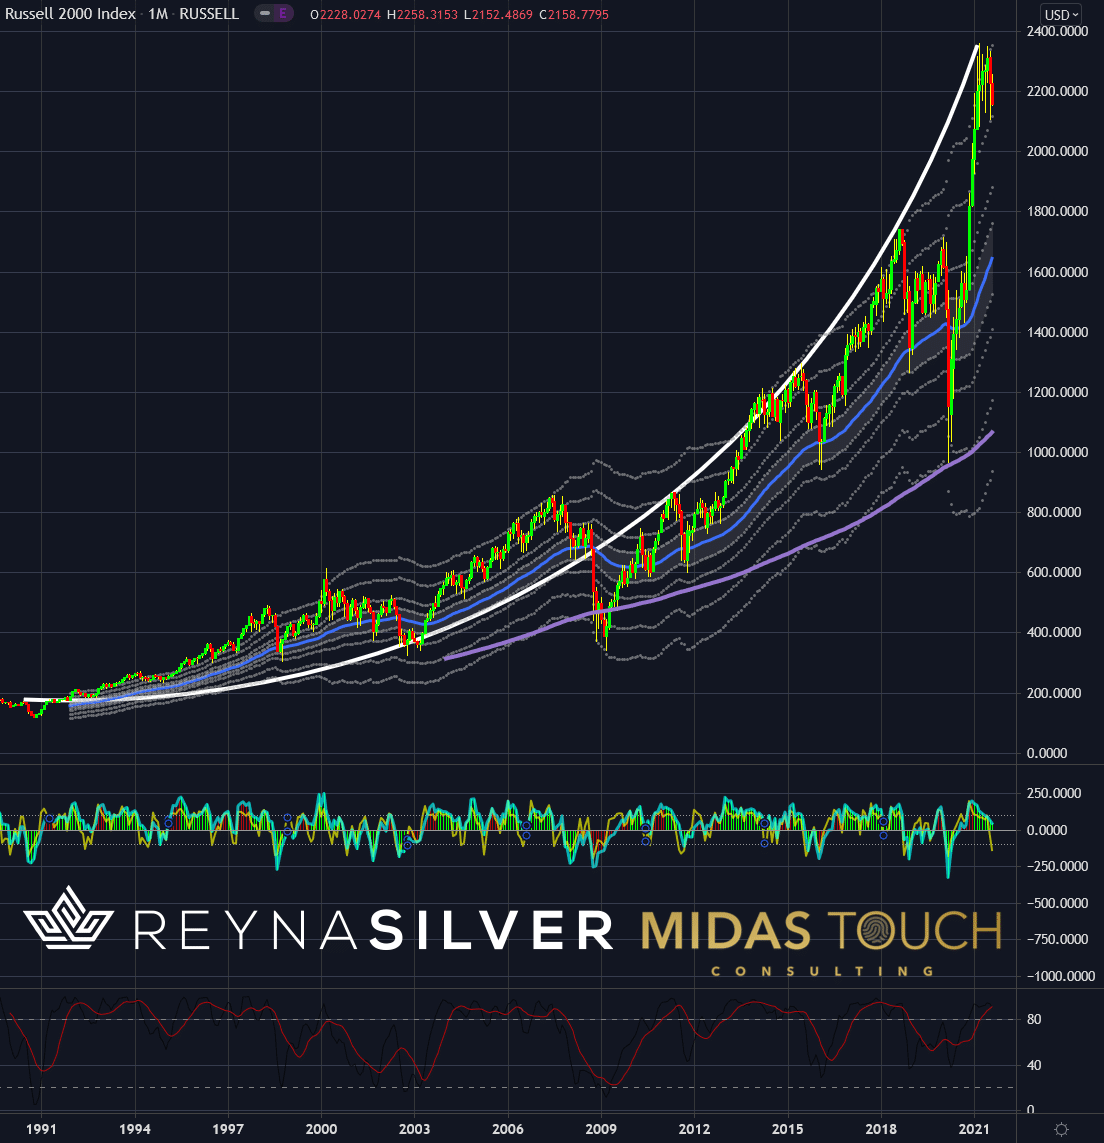 Russell 2000 Index in US-Dollar, monthly chart as of August 20th, 2021. Important patterns for silver